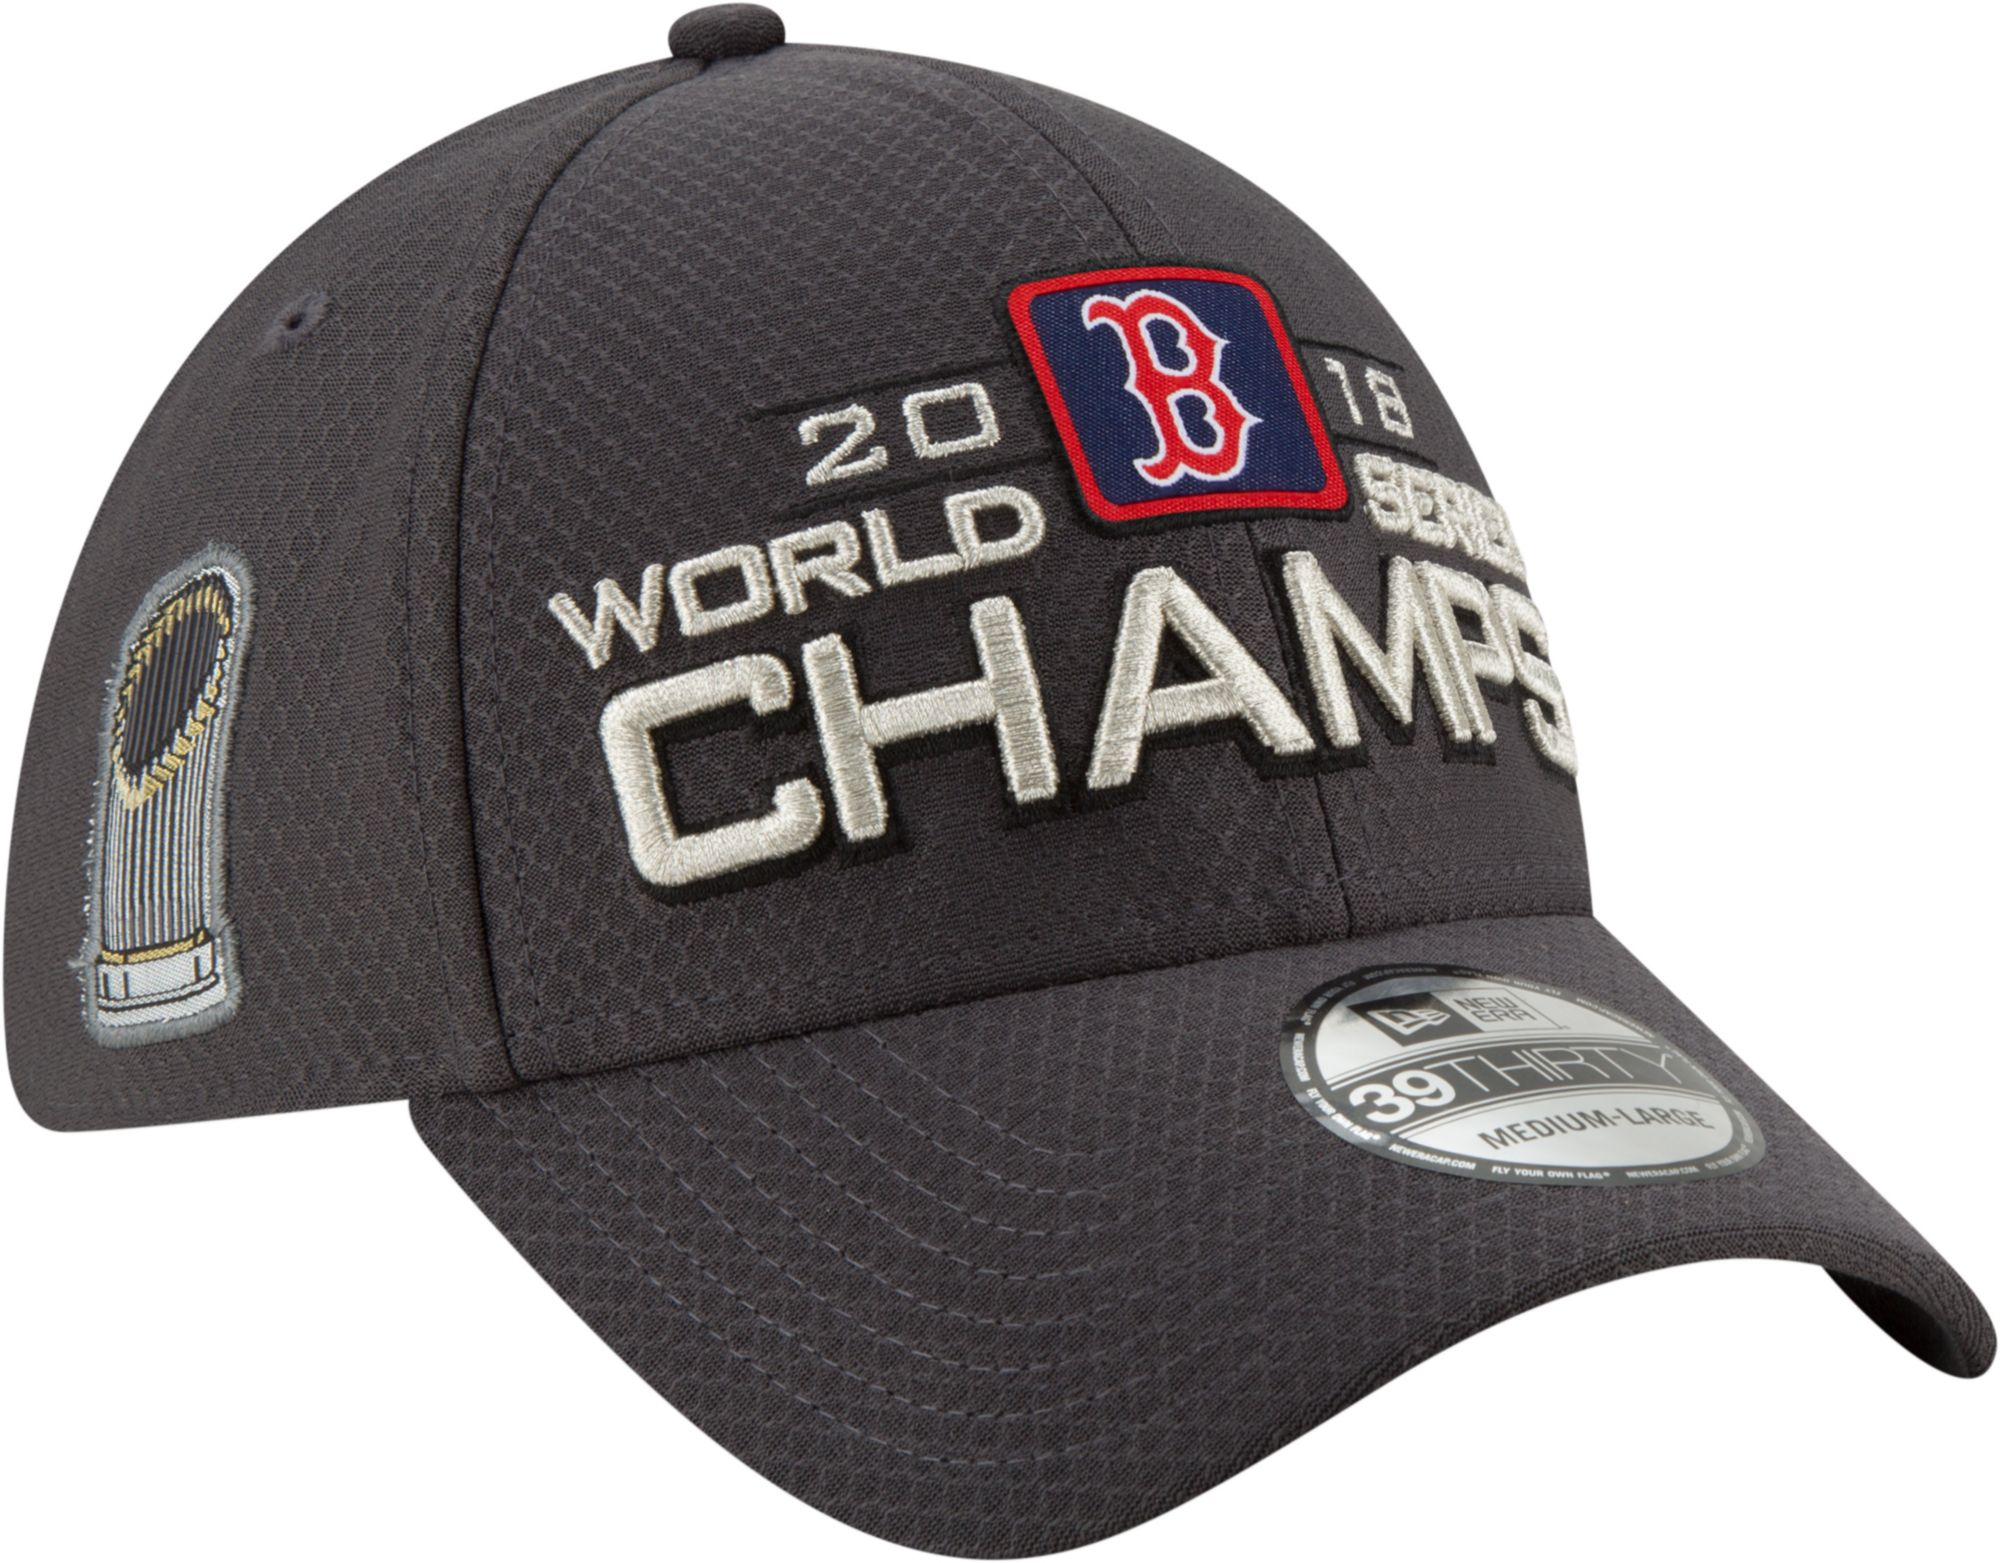 fff23a0f30d clearance new era youth 2018 world series champions locker room 39thirty  boston red sox stretch fit